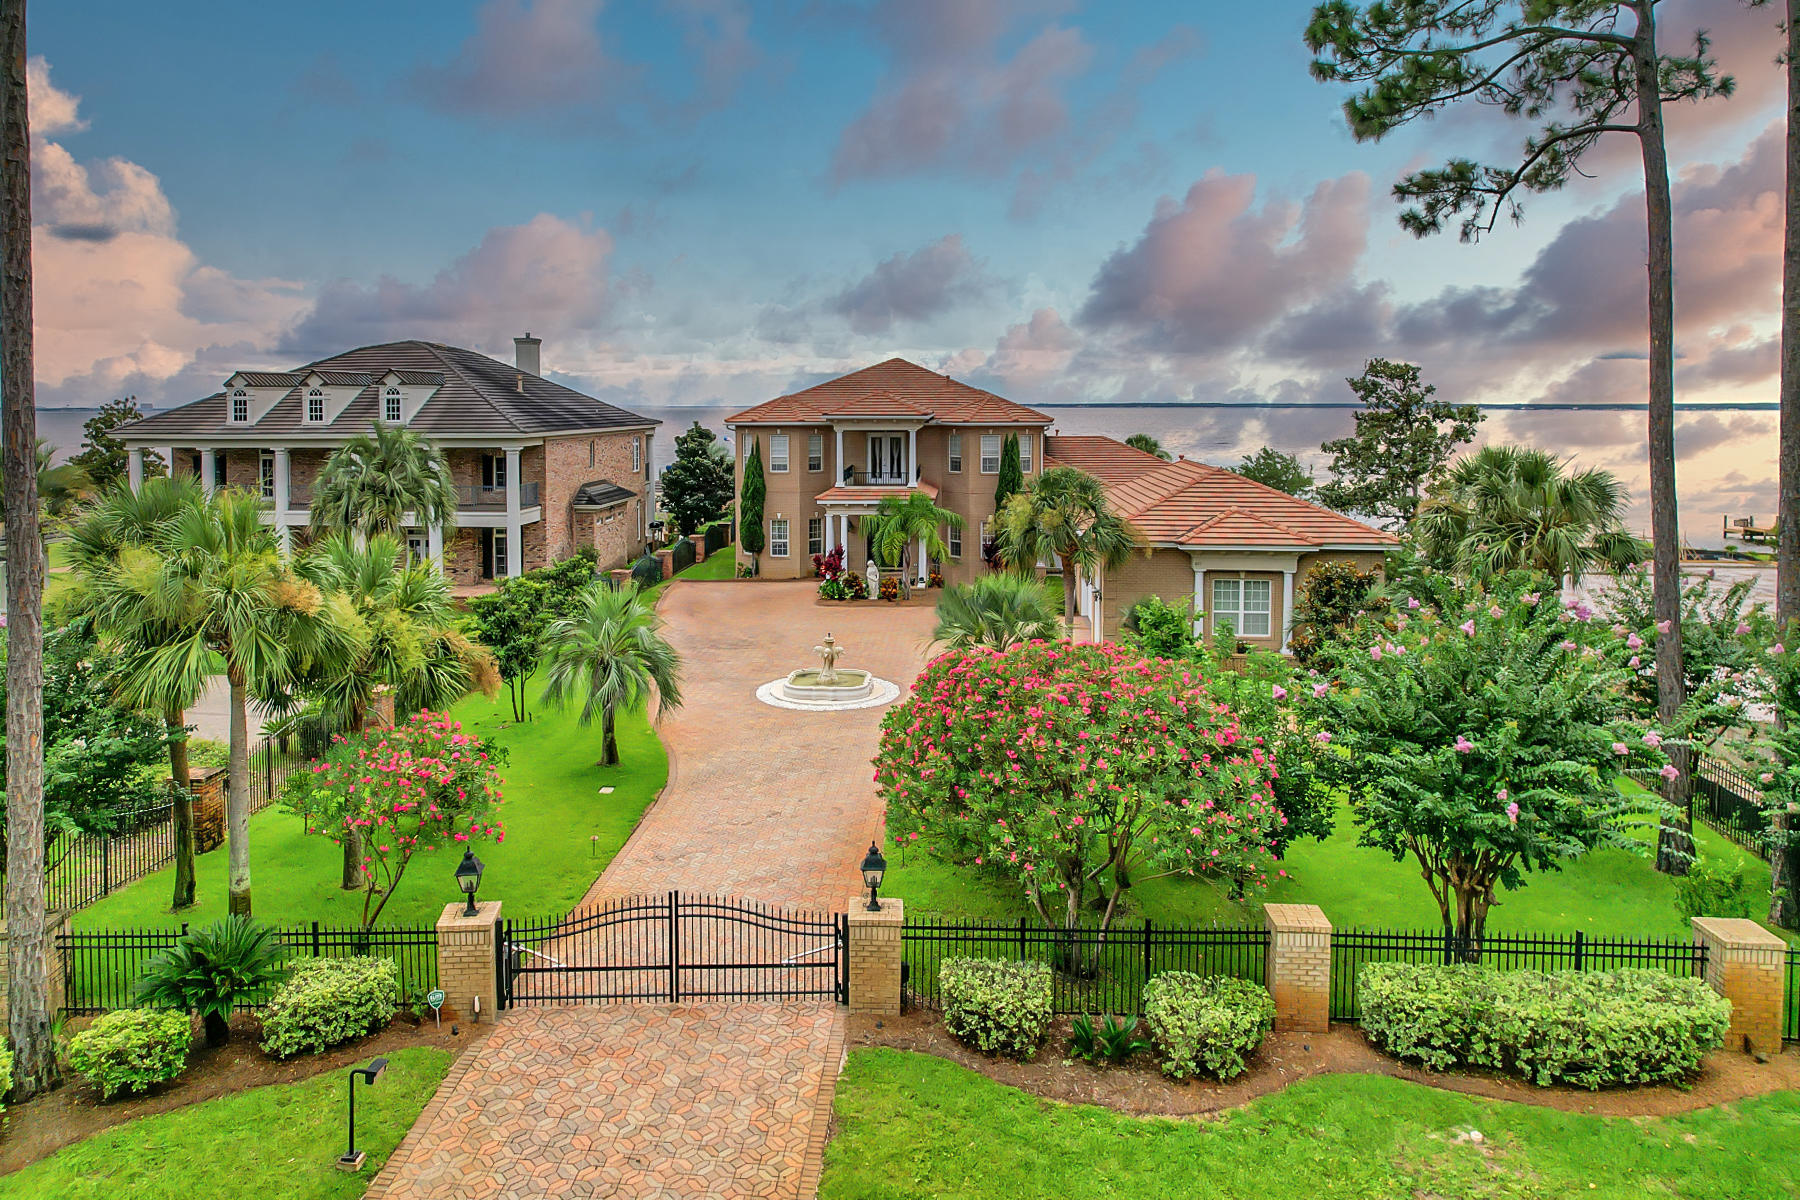 Escape to this Mediterranean Estate which allows for spectacular 180 degree views across the Choctaw